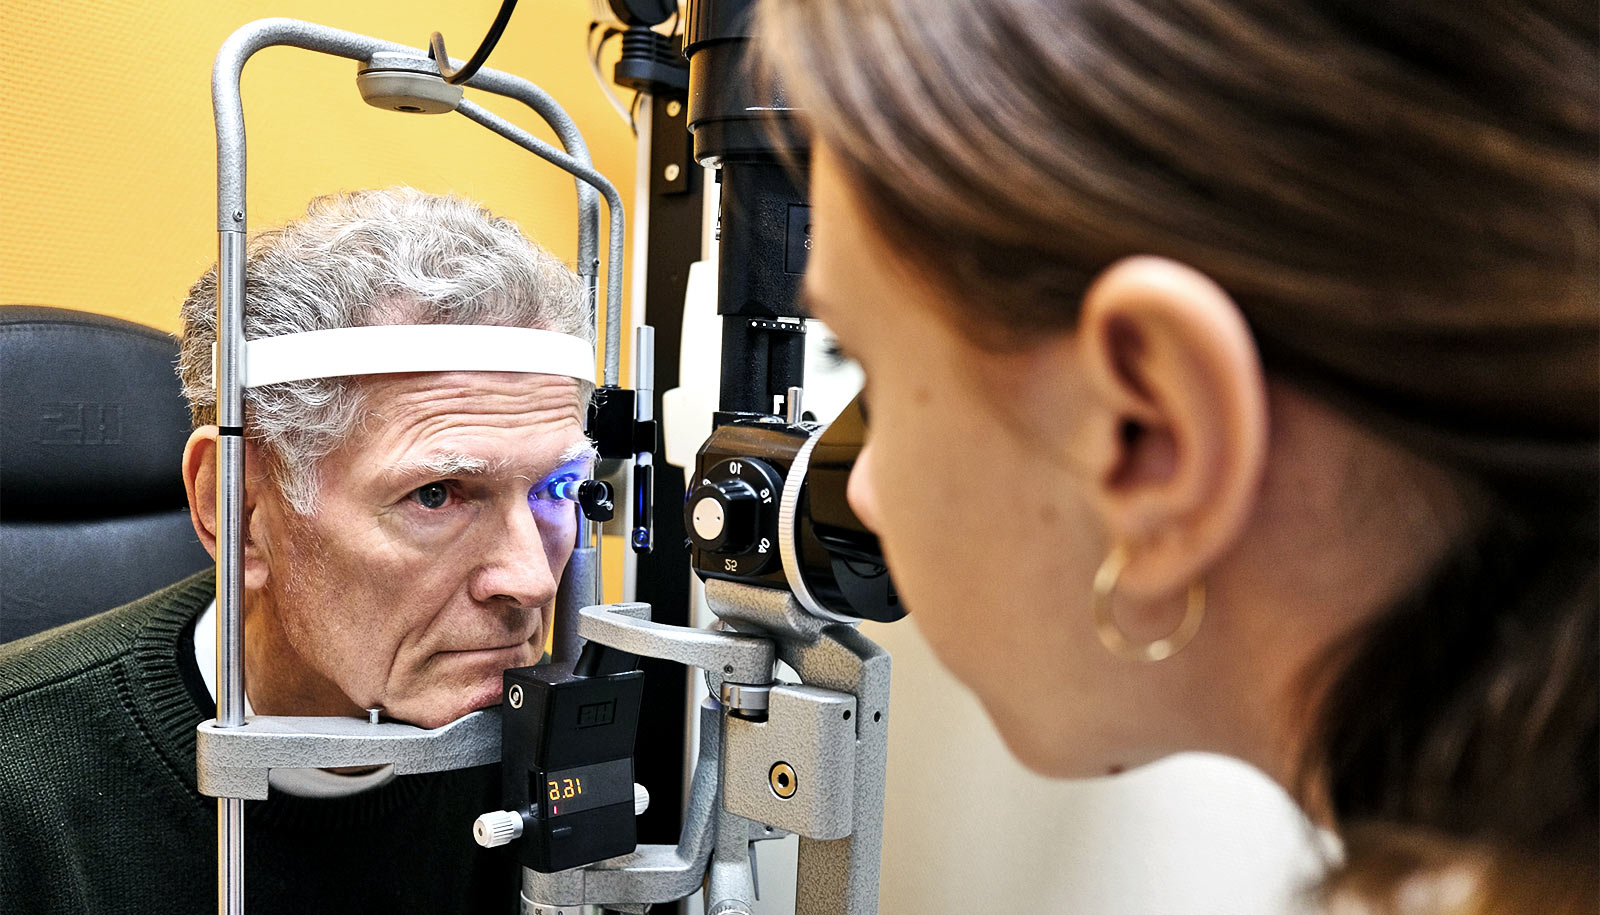 Catching vision issues early could mean more healthy years